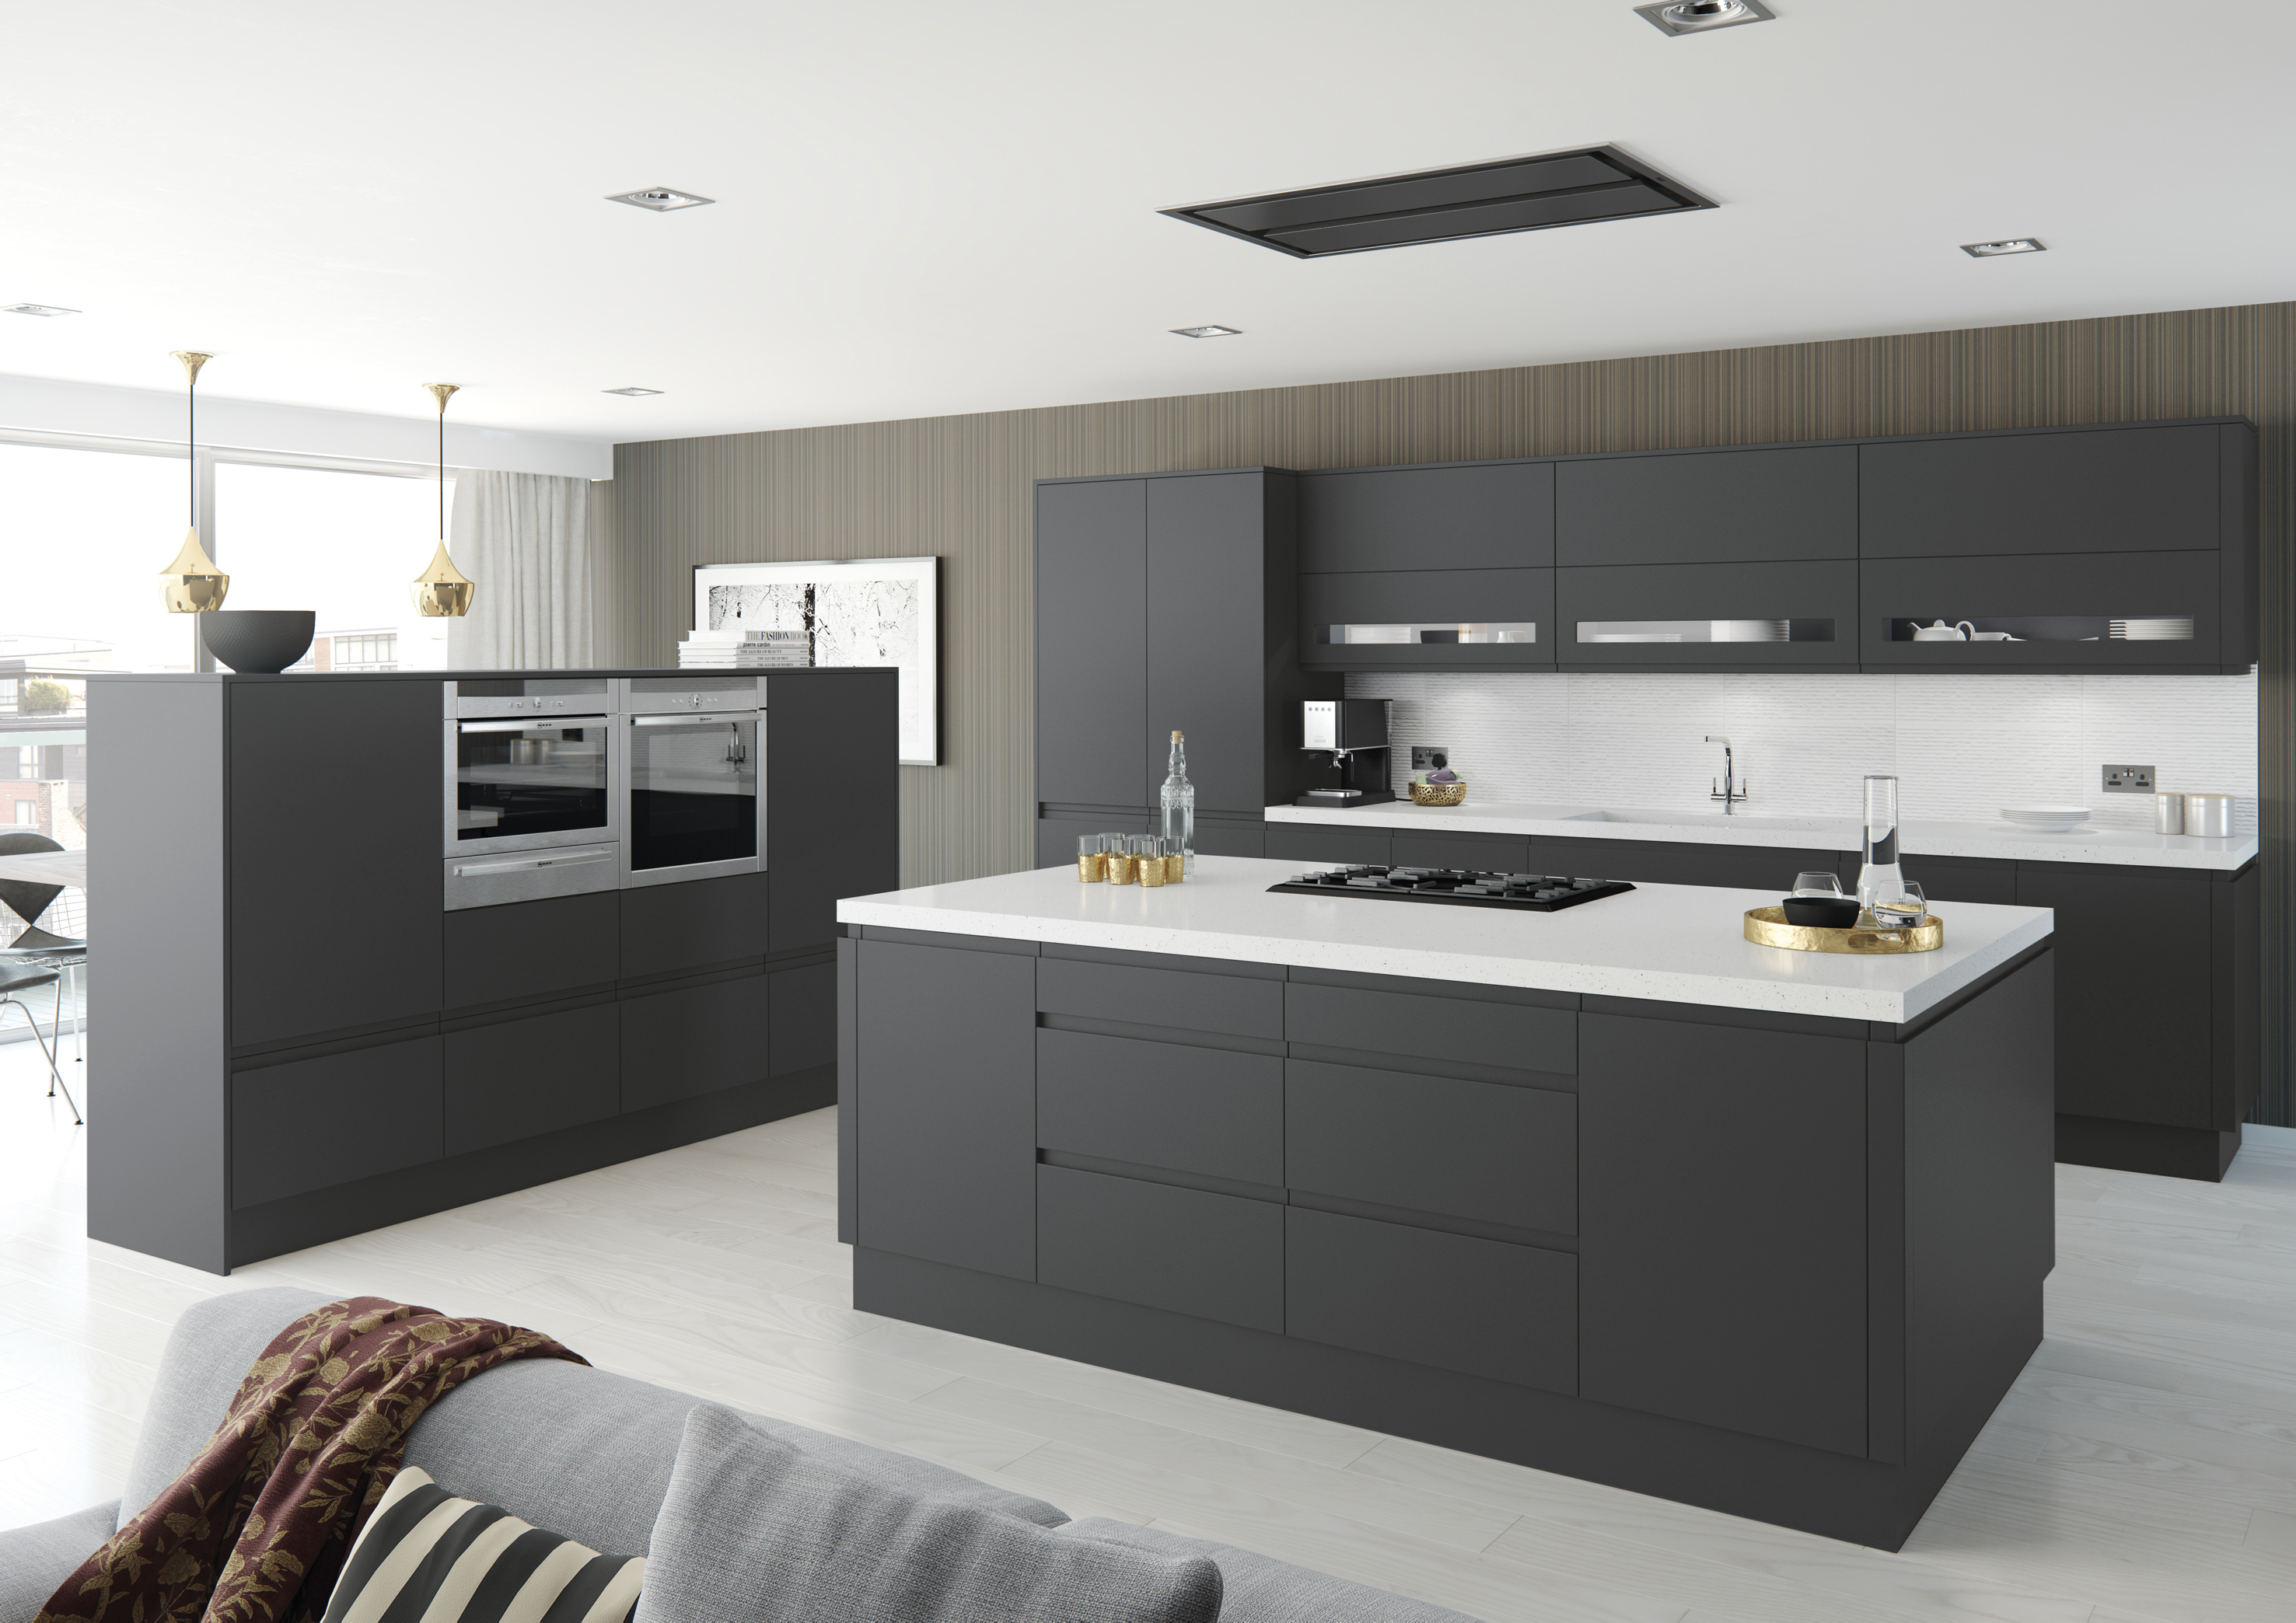 Budget Friendly Ways To Improve Your Kitchen - Dark grey kitchen doors